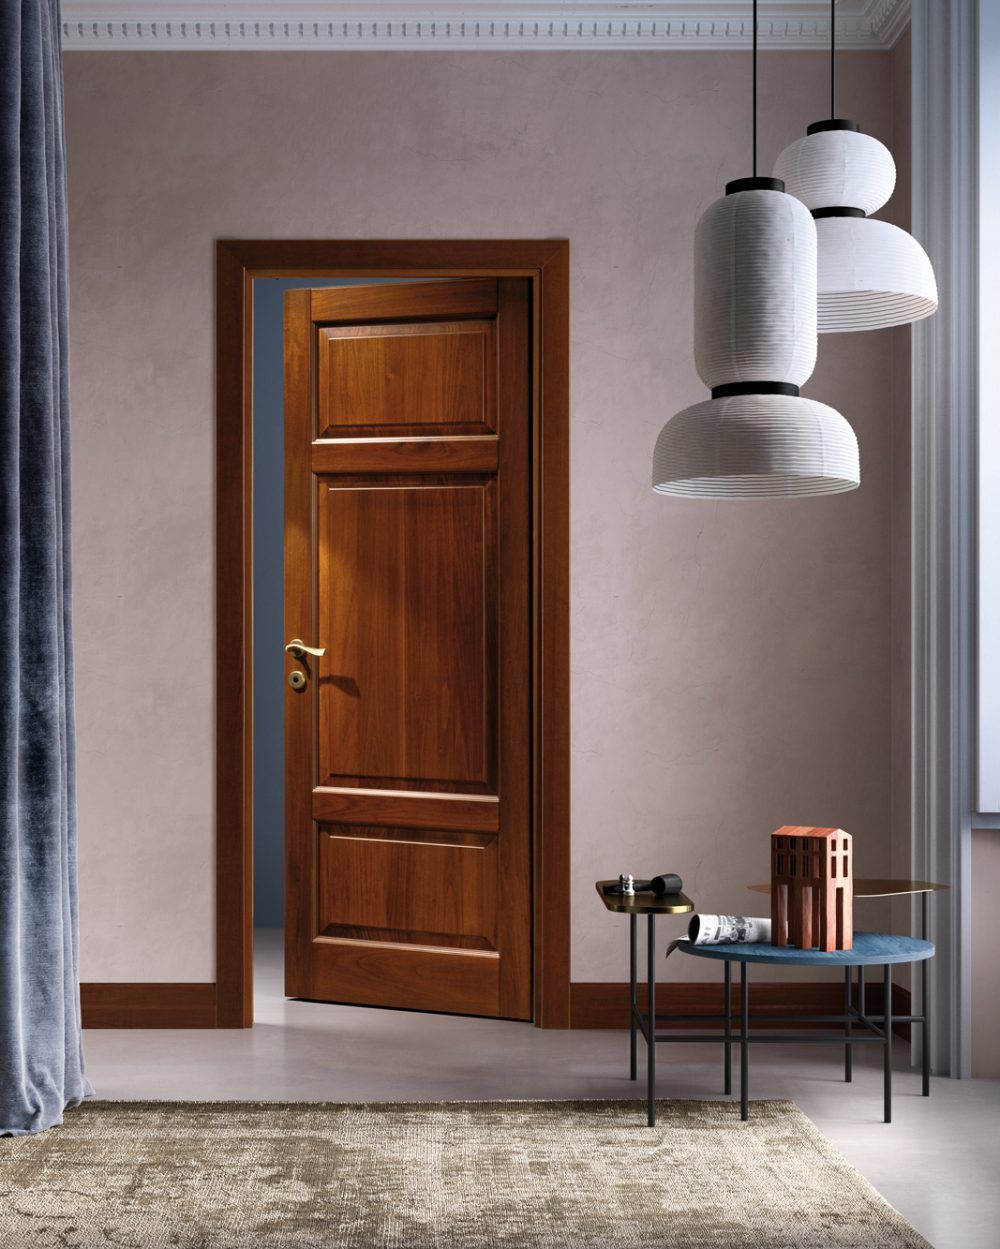 Wood Door Porta In Legno In 2020 Wood Doors Interior Solid Wood Interior Door Interior